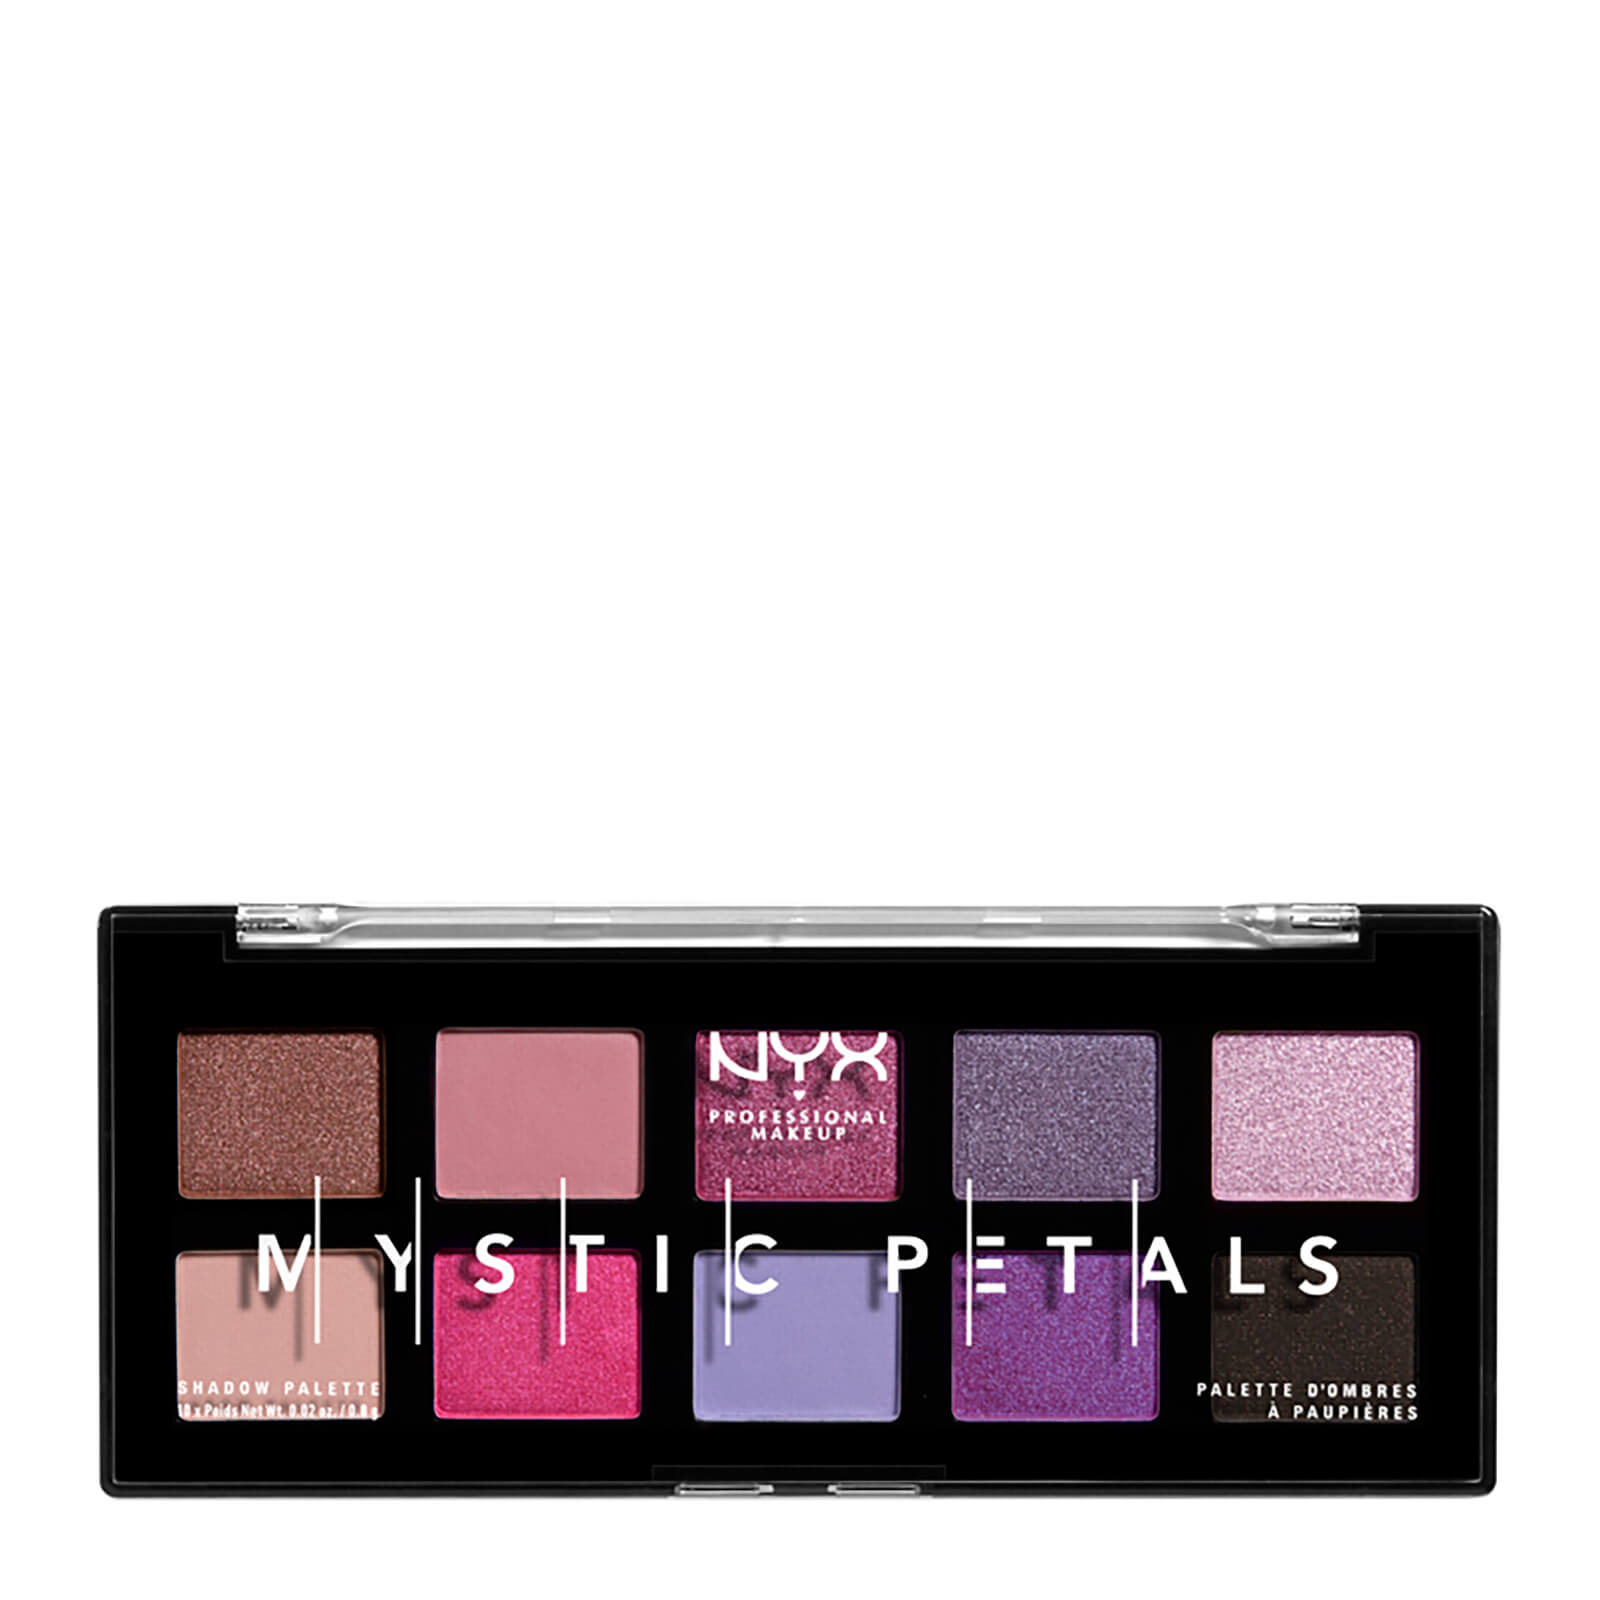 Mystic Petals Eye Shadow Palette Midnight Orchid Nyx